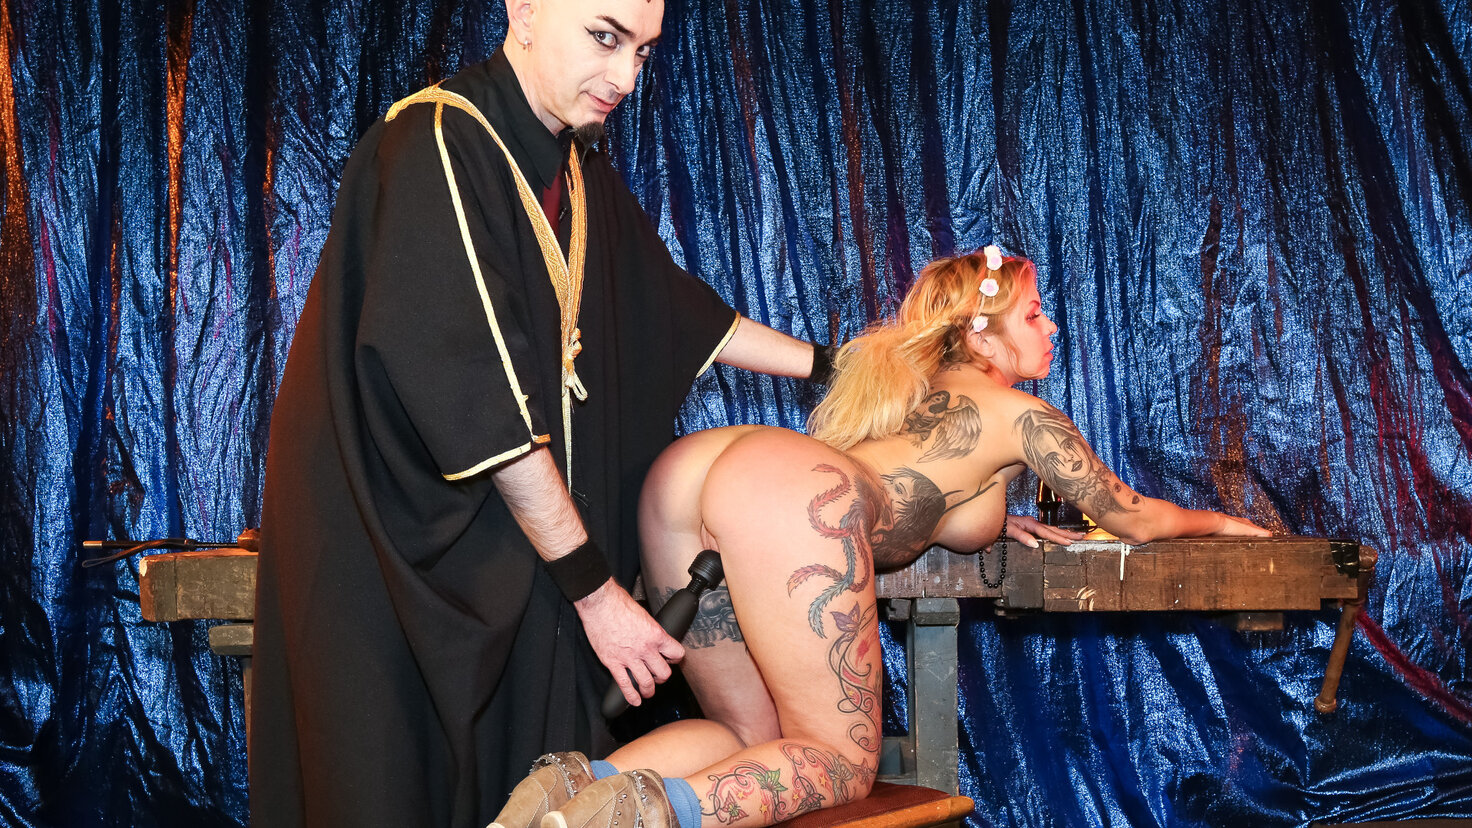 Freaky BDSM session with busty squirting German blondie Mia De Berg PT 2